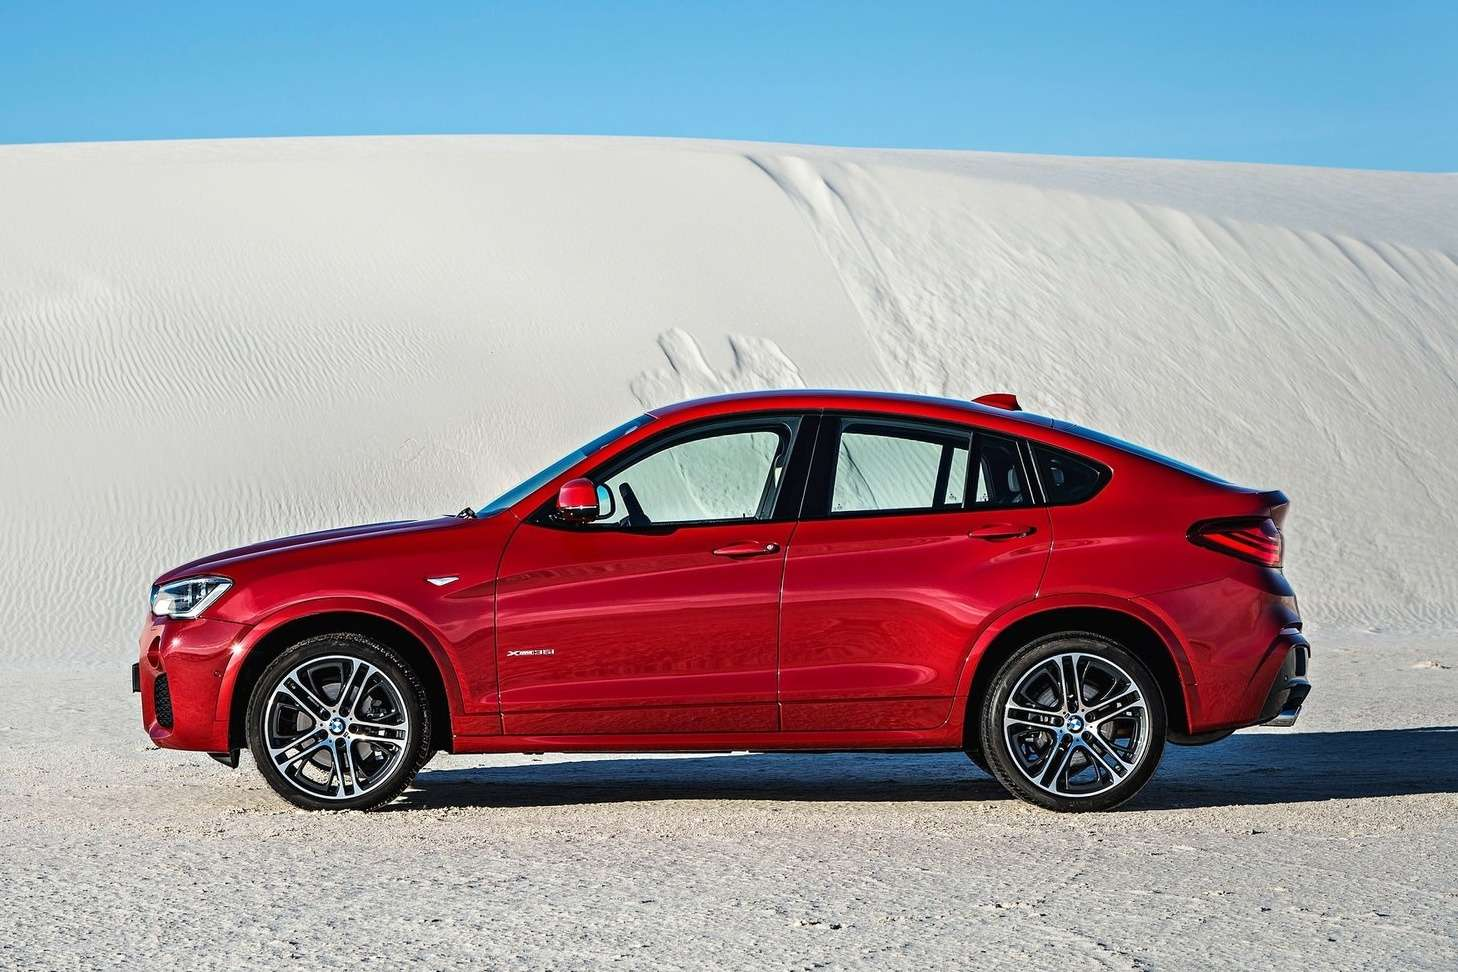 BMW-X4_2015_1600x1200_wallpaper_1c